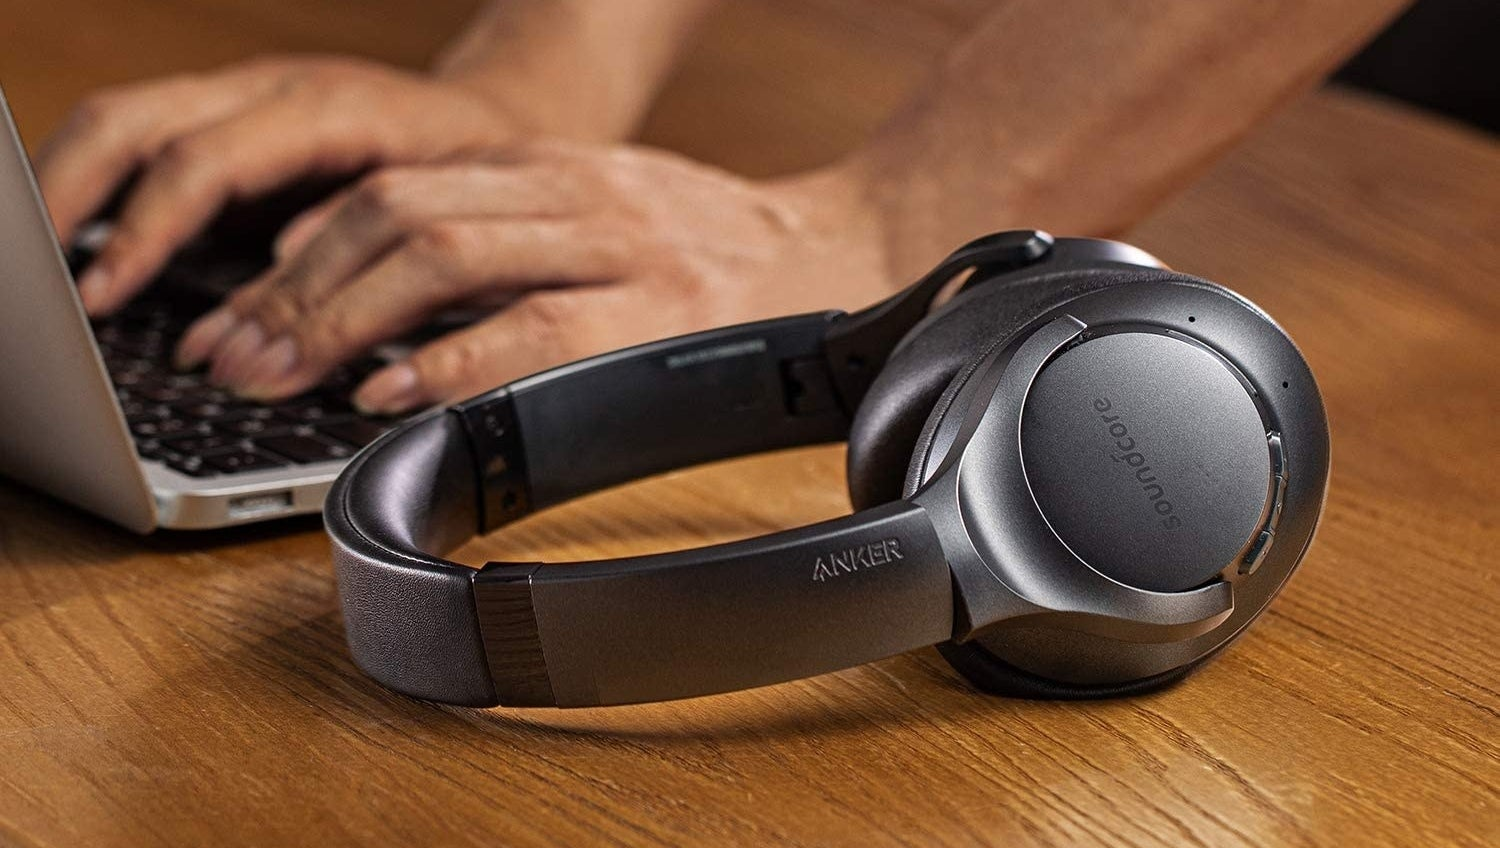 A set of Anker noise-canceling headphones set on a table